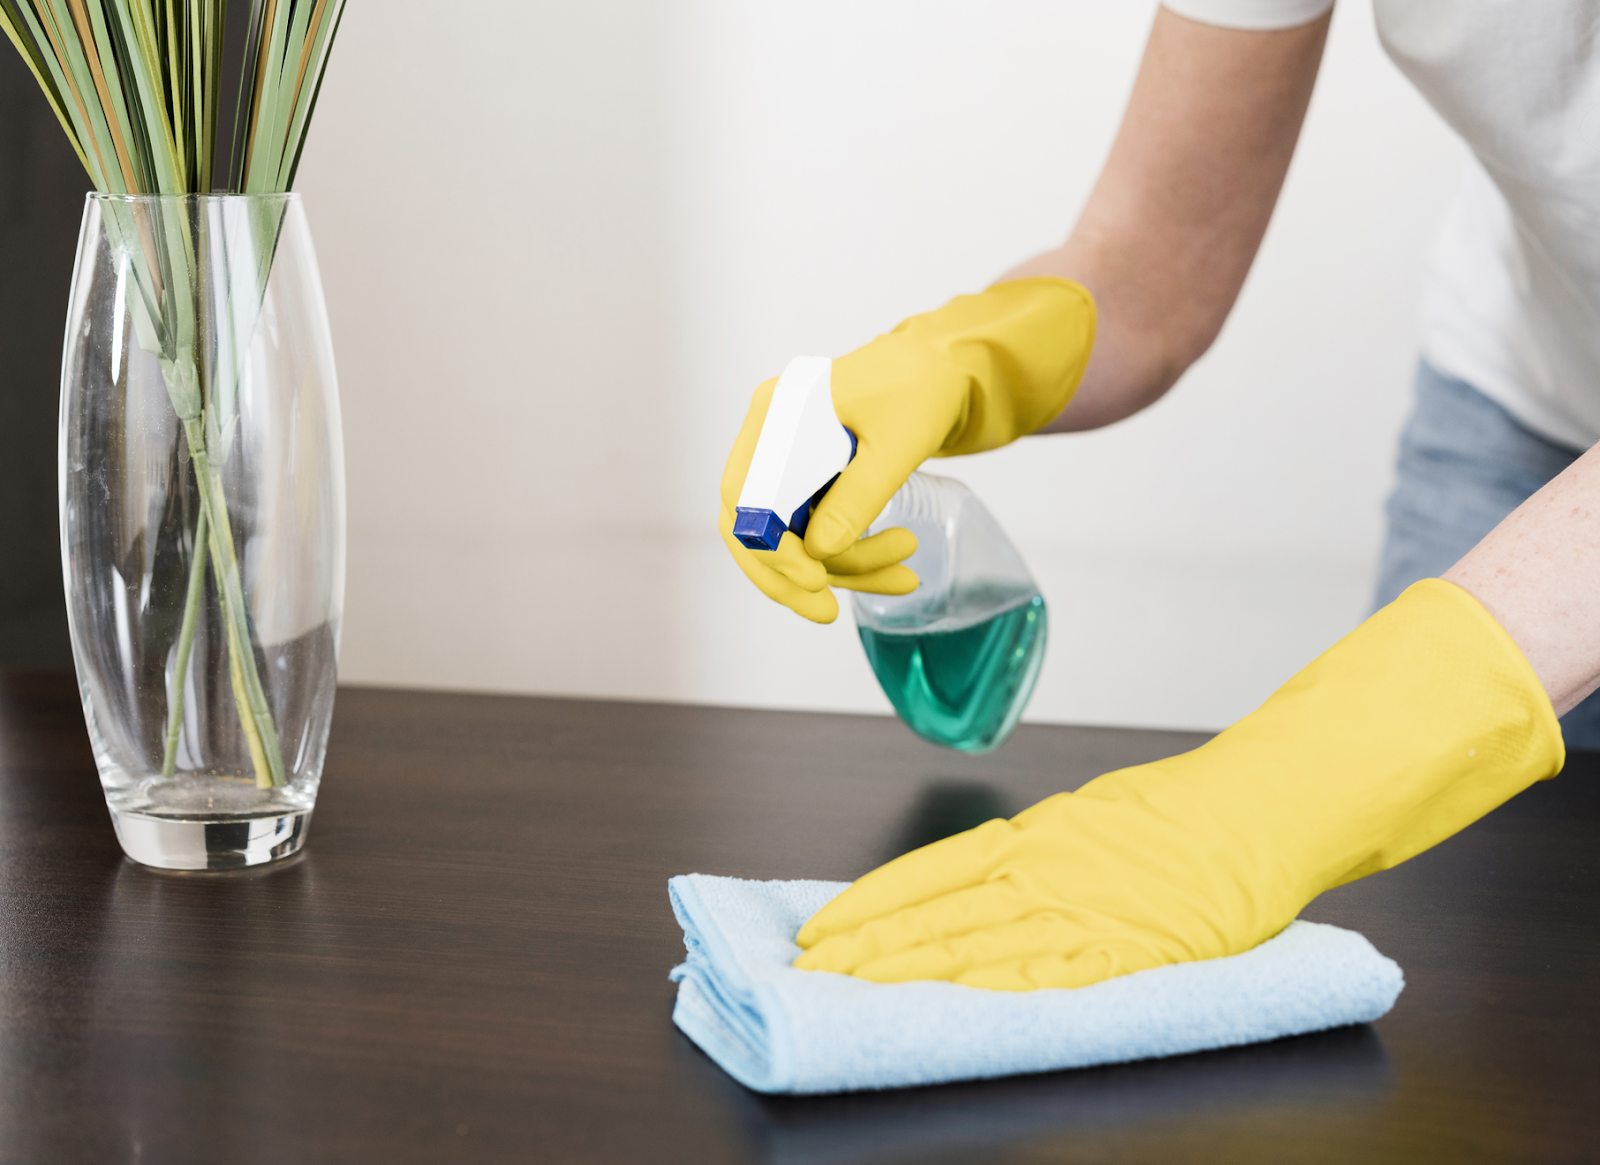 wiping and cleaning a table